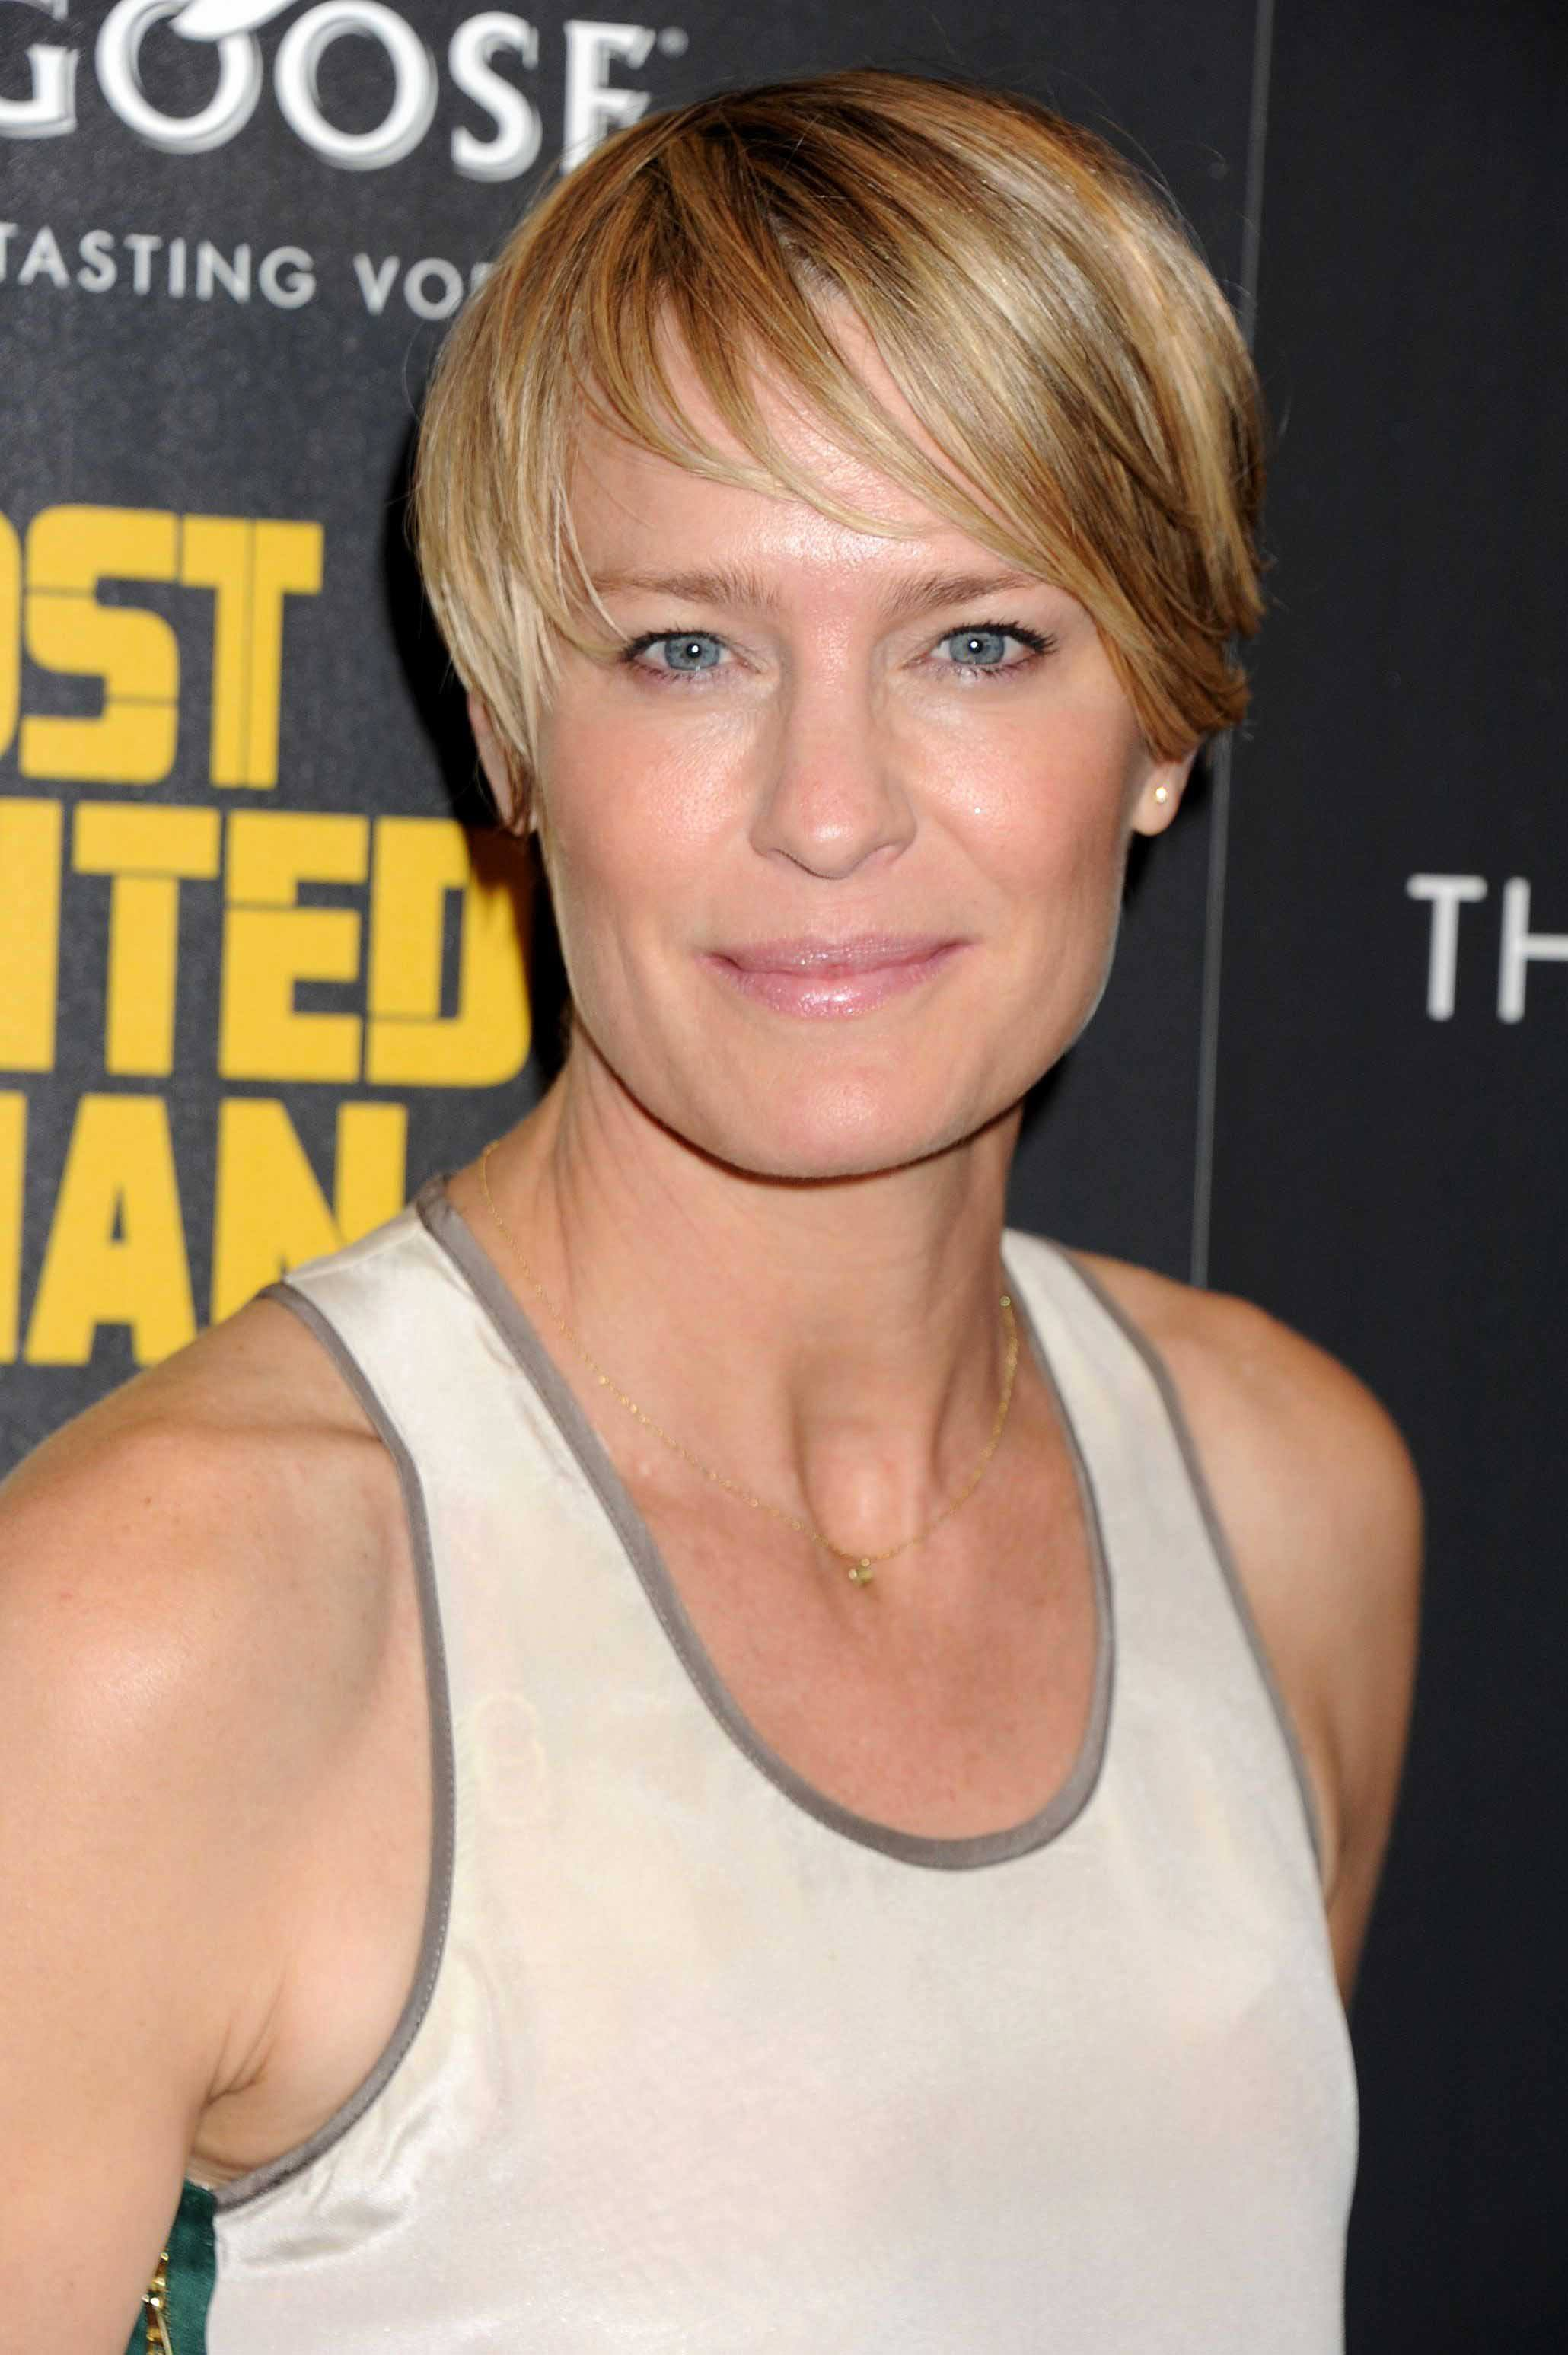 pixie crop hairstyles: All Things Hair - IMAGE - Robin Wright blonde straight short hair